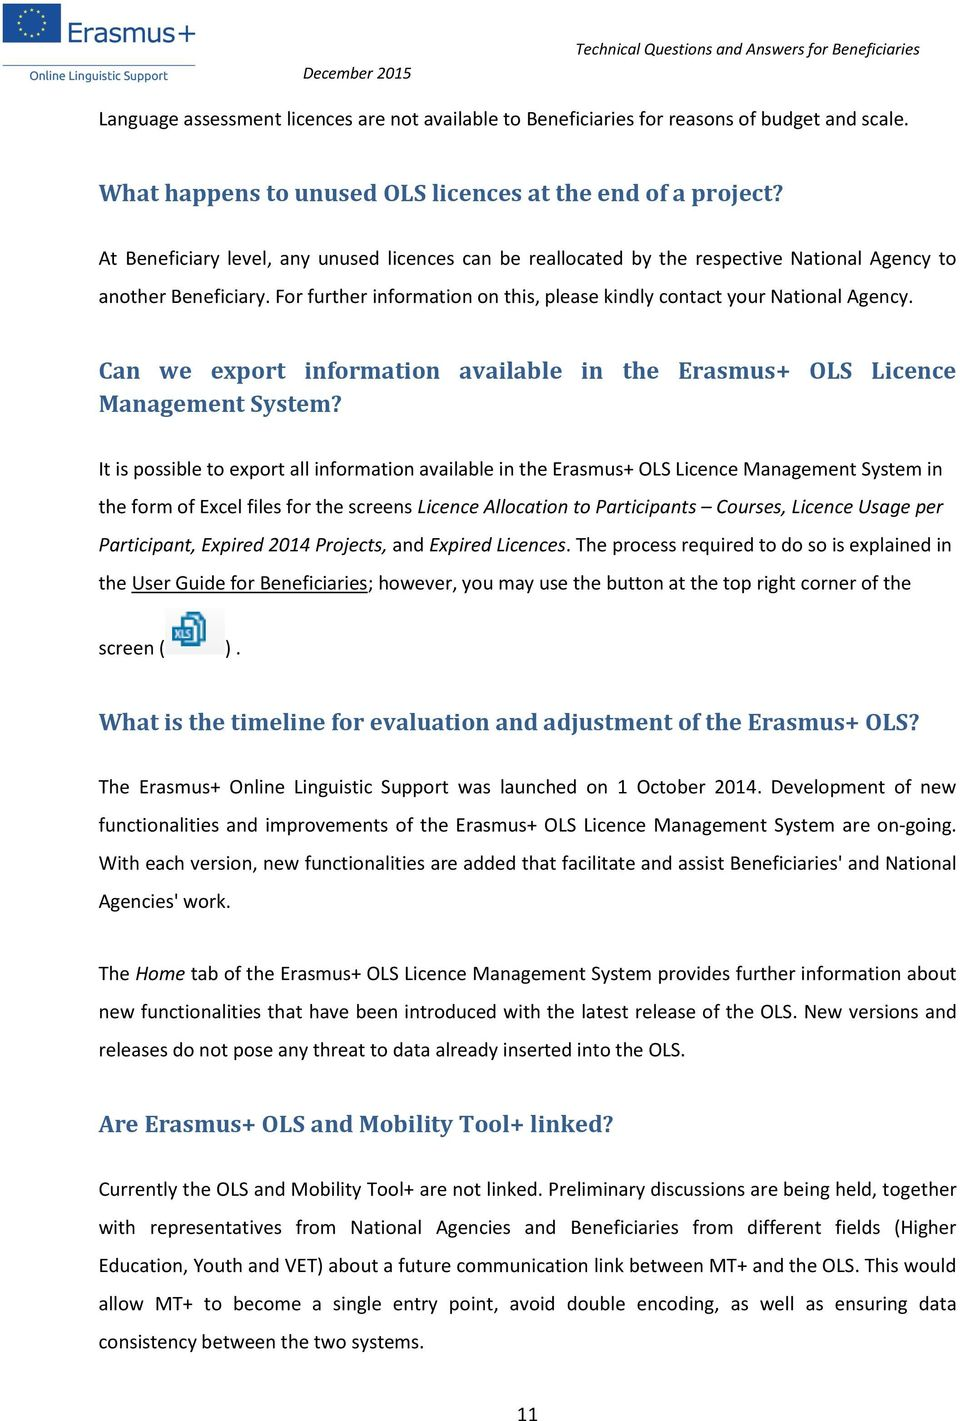 Can we export information available in the Erasmus+ OLS Licence Management System?